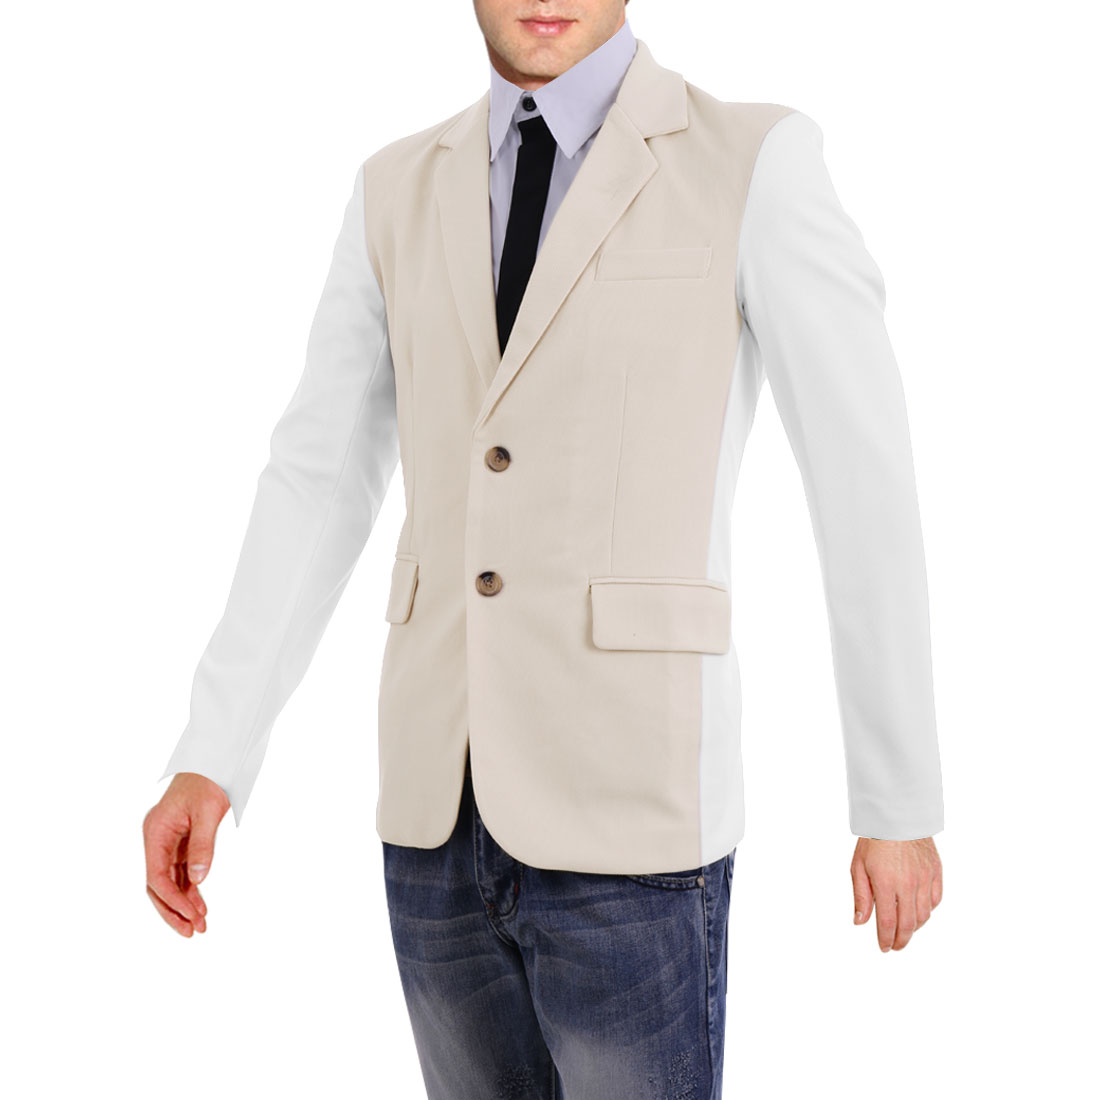 NEW Notched Lapel Padded Shoulder Color Blocking Beige White Blazer for Man M